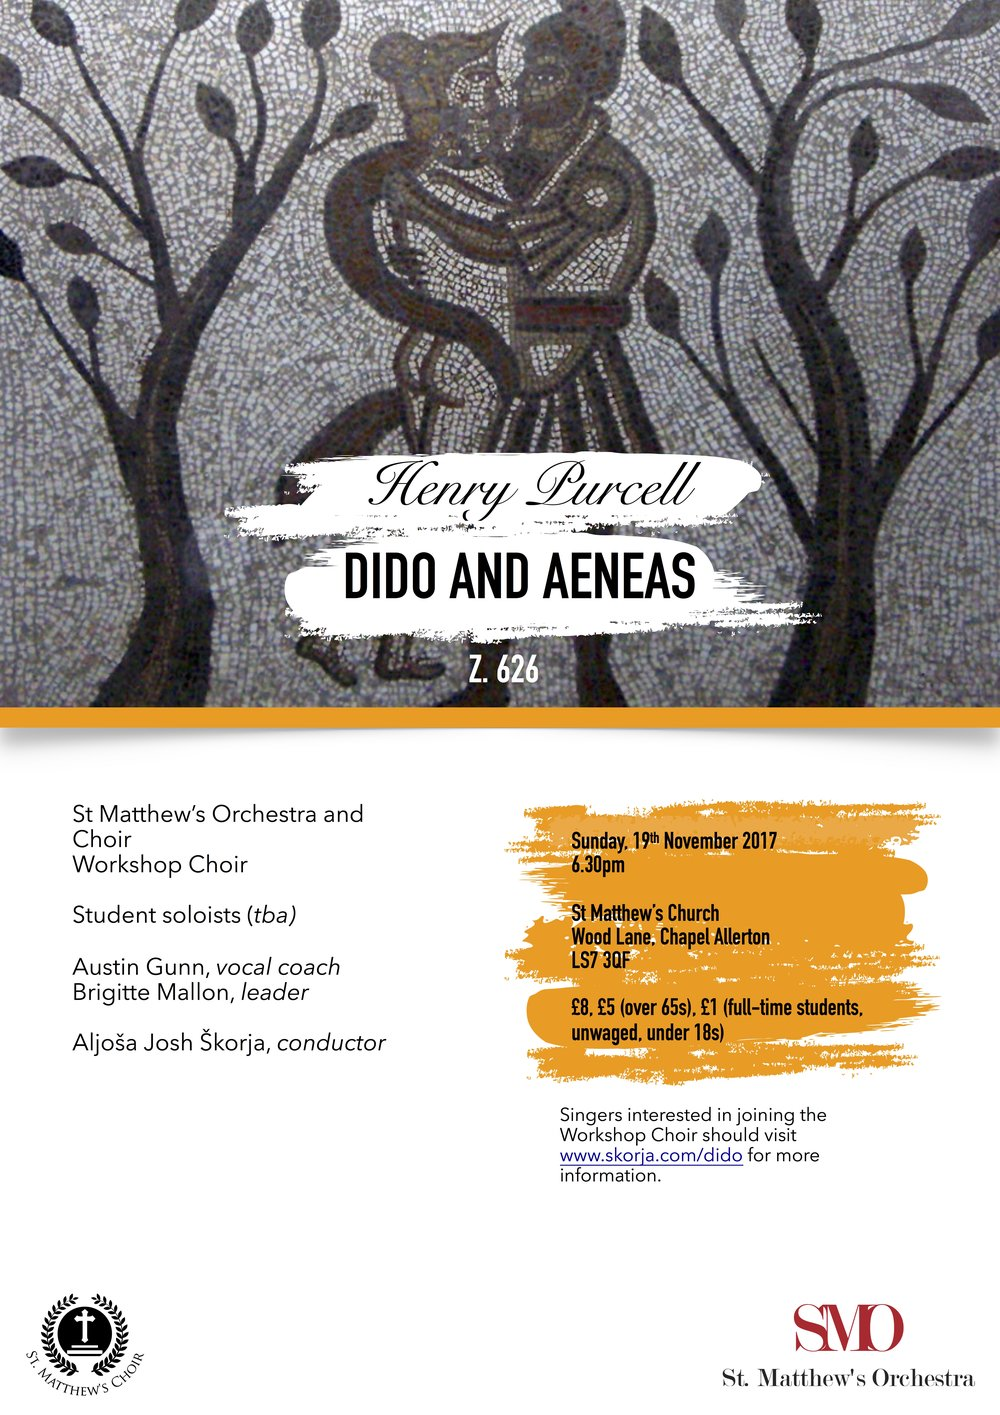 Flyer CandS Dido 2017 (JPEG).jpg